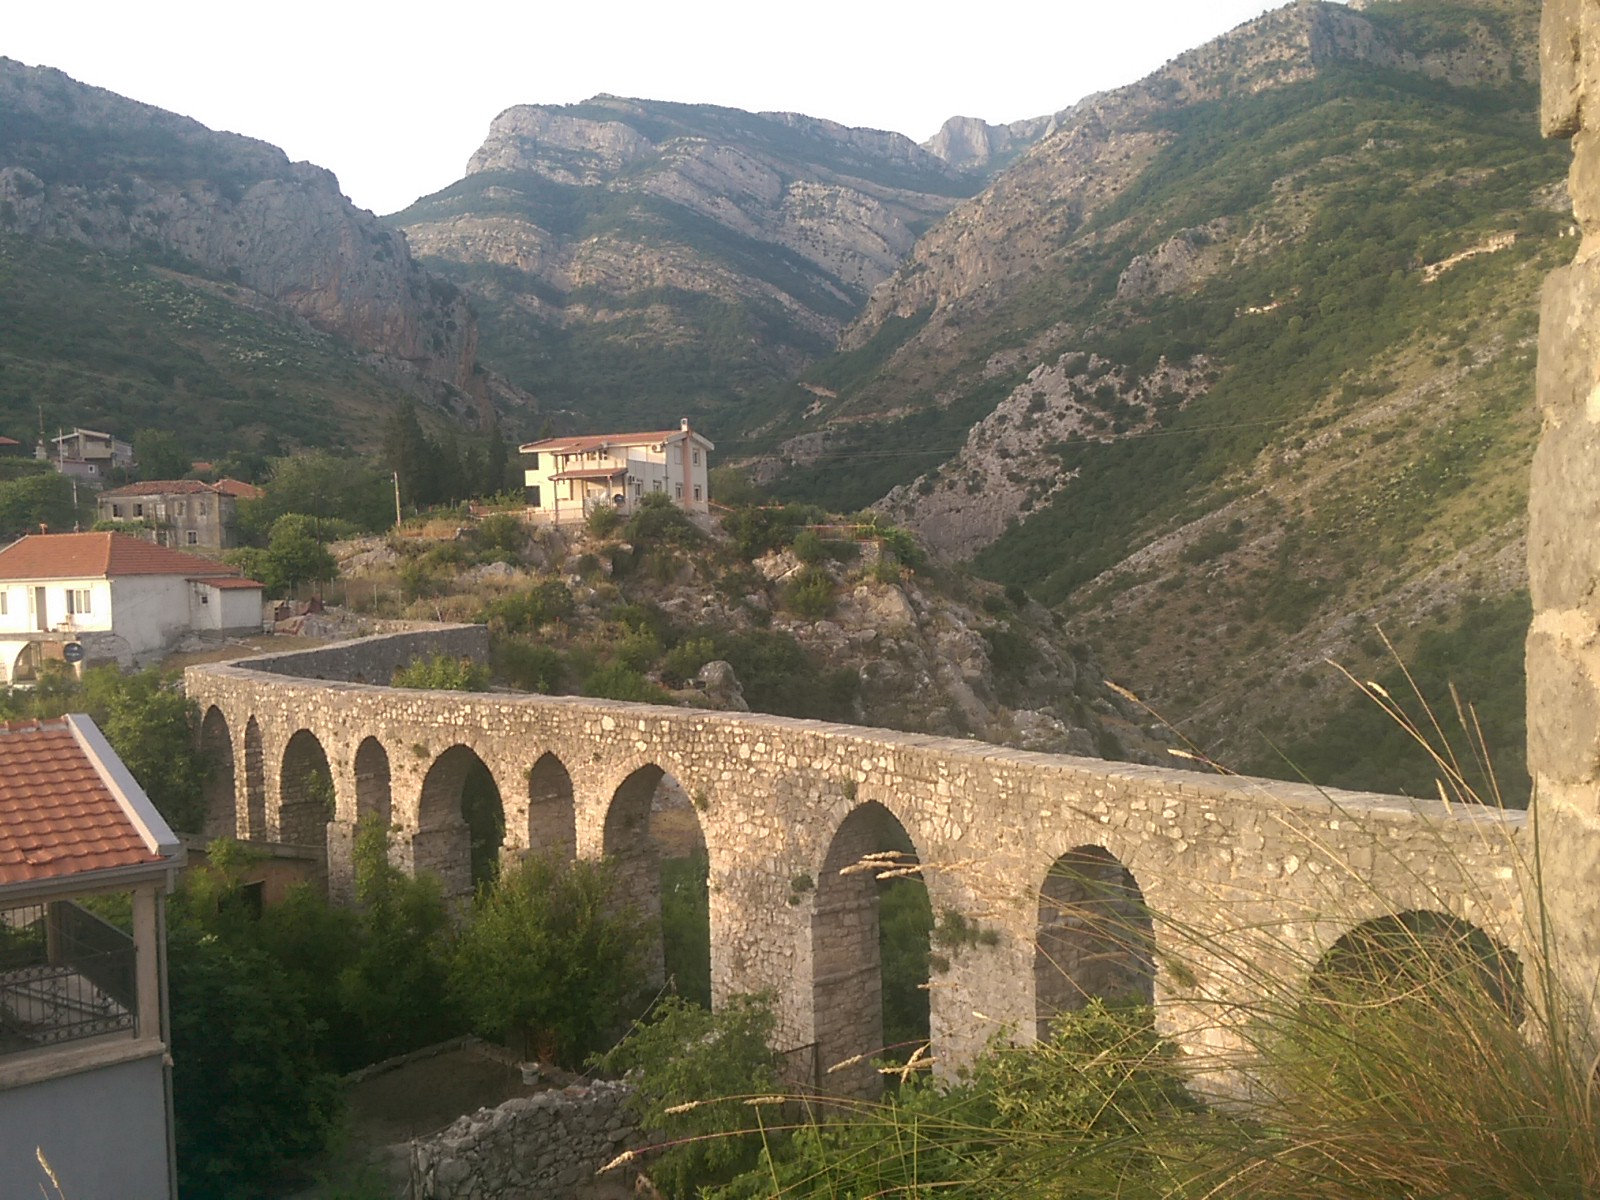 An aquaduct cuvers into the distance, between houses, backed by mountains with angular lines